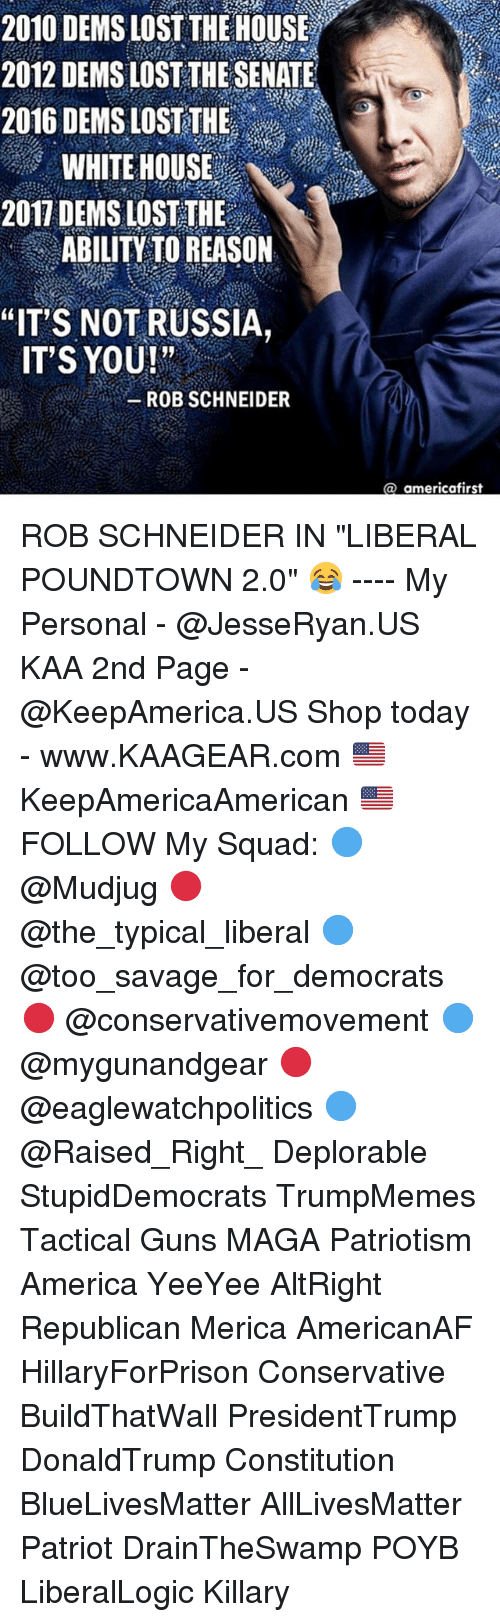 "My Squad: 2010 DEMS LOST THE HOUSE  2012 DEMS LOST THE SENATE  2016 DEMS LOST THE  WHITE HOUSE  2017 DEMS LOST THE  ABILITY TO REASON  ""IT'S NOT RUSSIA,  IT'S YOU!""  ROB SCHNEIDER  a americafirst ROB SCHNEIDER IN ""LIBERAL POUNDTOWN 2.0"" 😂 ---- My Personal - @JesseRyan.US KAA 2nd Page - @KeepAmerica.US Shop today - www.KAAGEAR.com 🇺🇸 KeepAmericaAmerican 🇺🇸 FOLLOW My Squad: 🔵 @Mudjug 🔴 @the_typical_liberal 🔵 @too_savage_for_democrats 🔴 @conservativemovement 🔵 @mygunandgear 🔴 @eaglewatchpolitics 🔵 @Raised_Right_ Deplorable StupidDemocrats TrumpMemes Tactical Guns MAGA Patriotism America YeeYee AltRight Republican Merica AmericanAF HillaryForPrison Conservative BuildThatWall PresidentTrump DonaldTrump Constitution BlueLivesMatter AllLivesMatter Patriot DrainTheSwamp POYB LiberalLogic Killary"